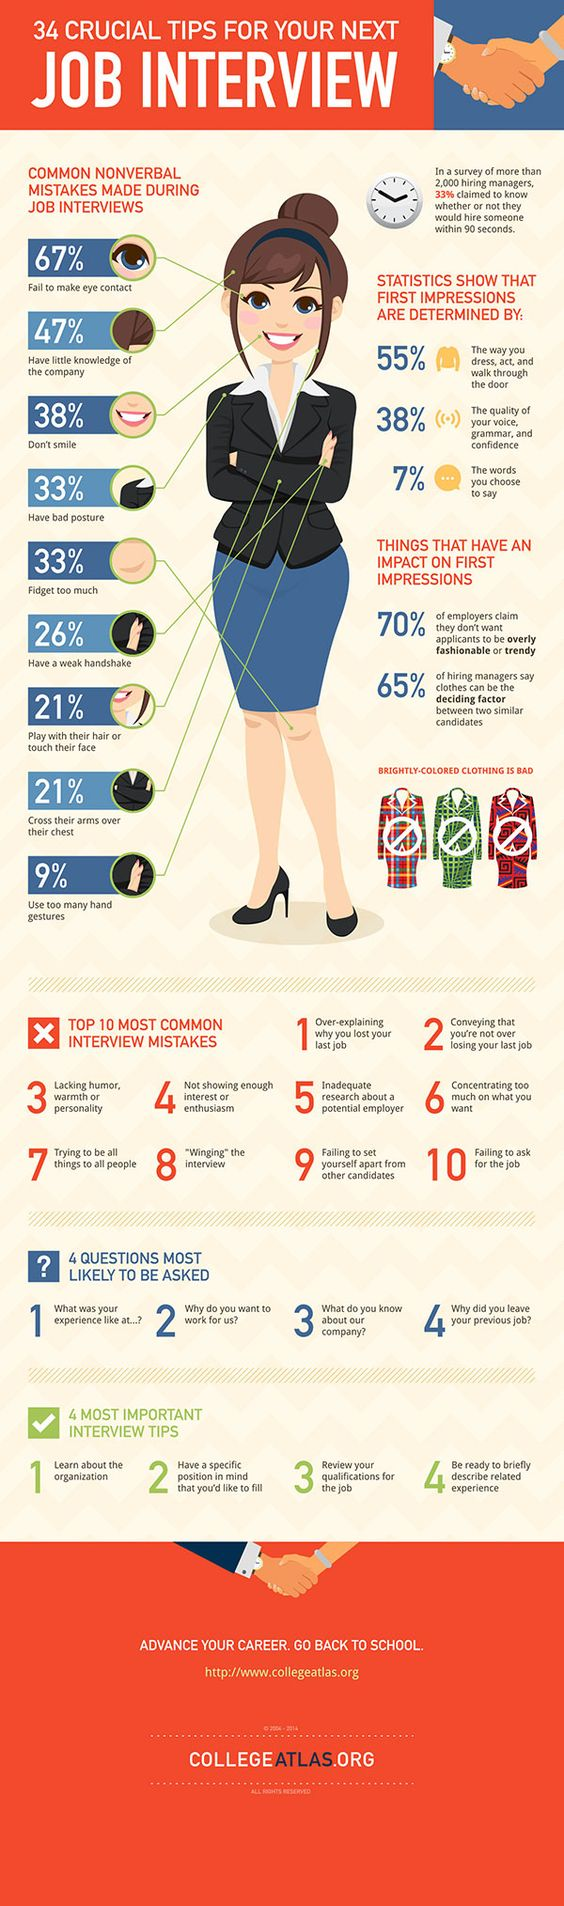 169 Best Job Interview Images On Pinterest | Job Interviews, Interview  Questions And Mistakes